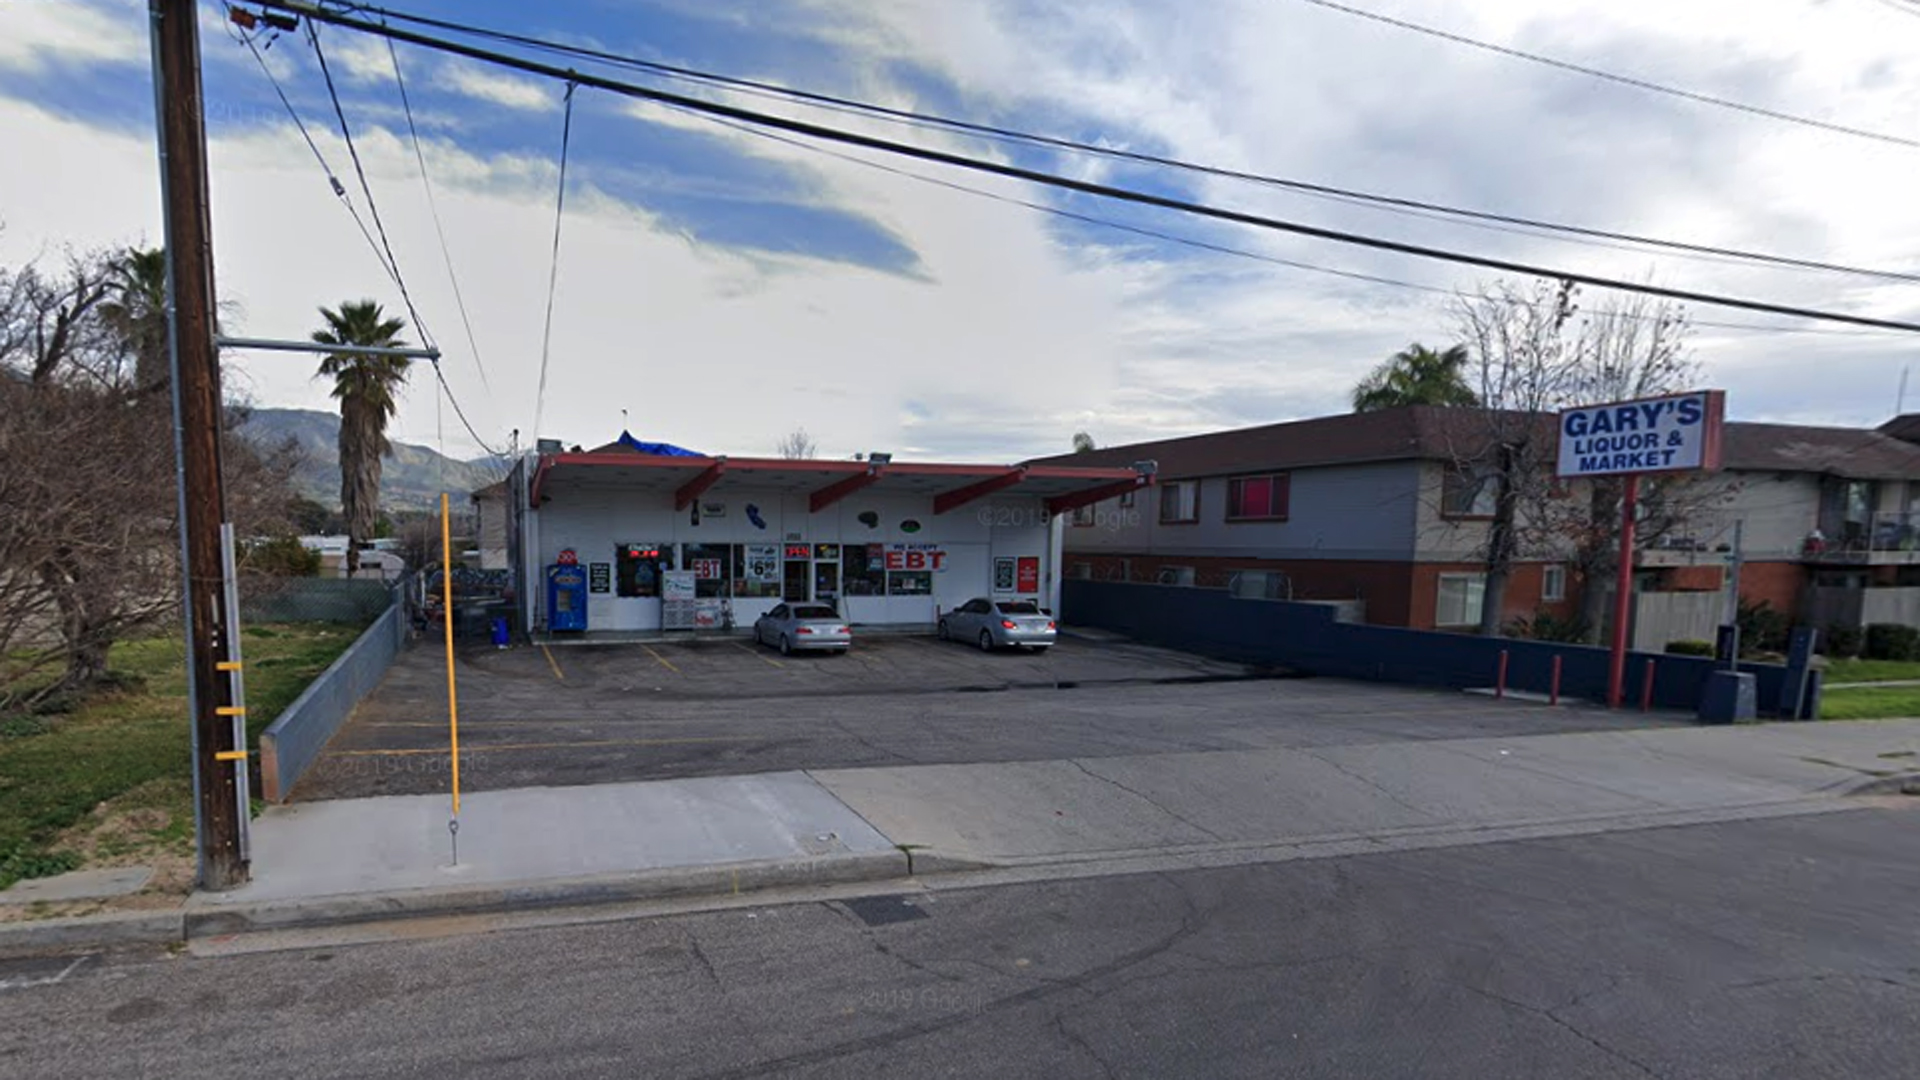 Gary's Liquor and Market, 3133 North Golden Ave. in San Bernardino, as pictured in a Google Street View image.